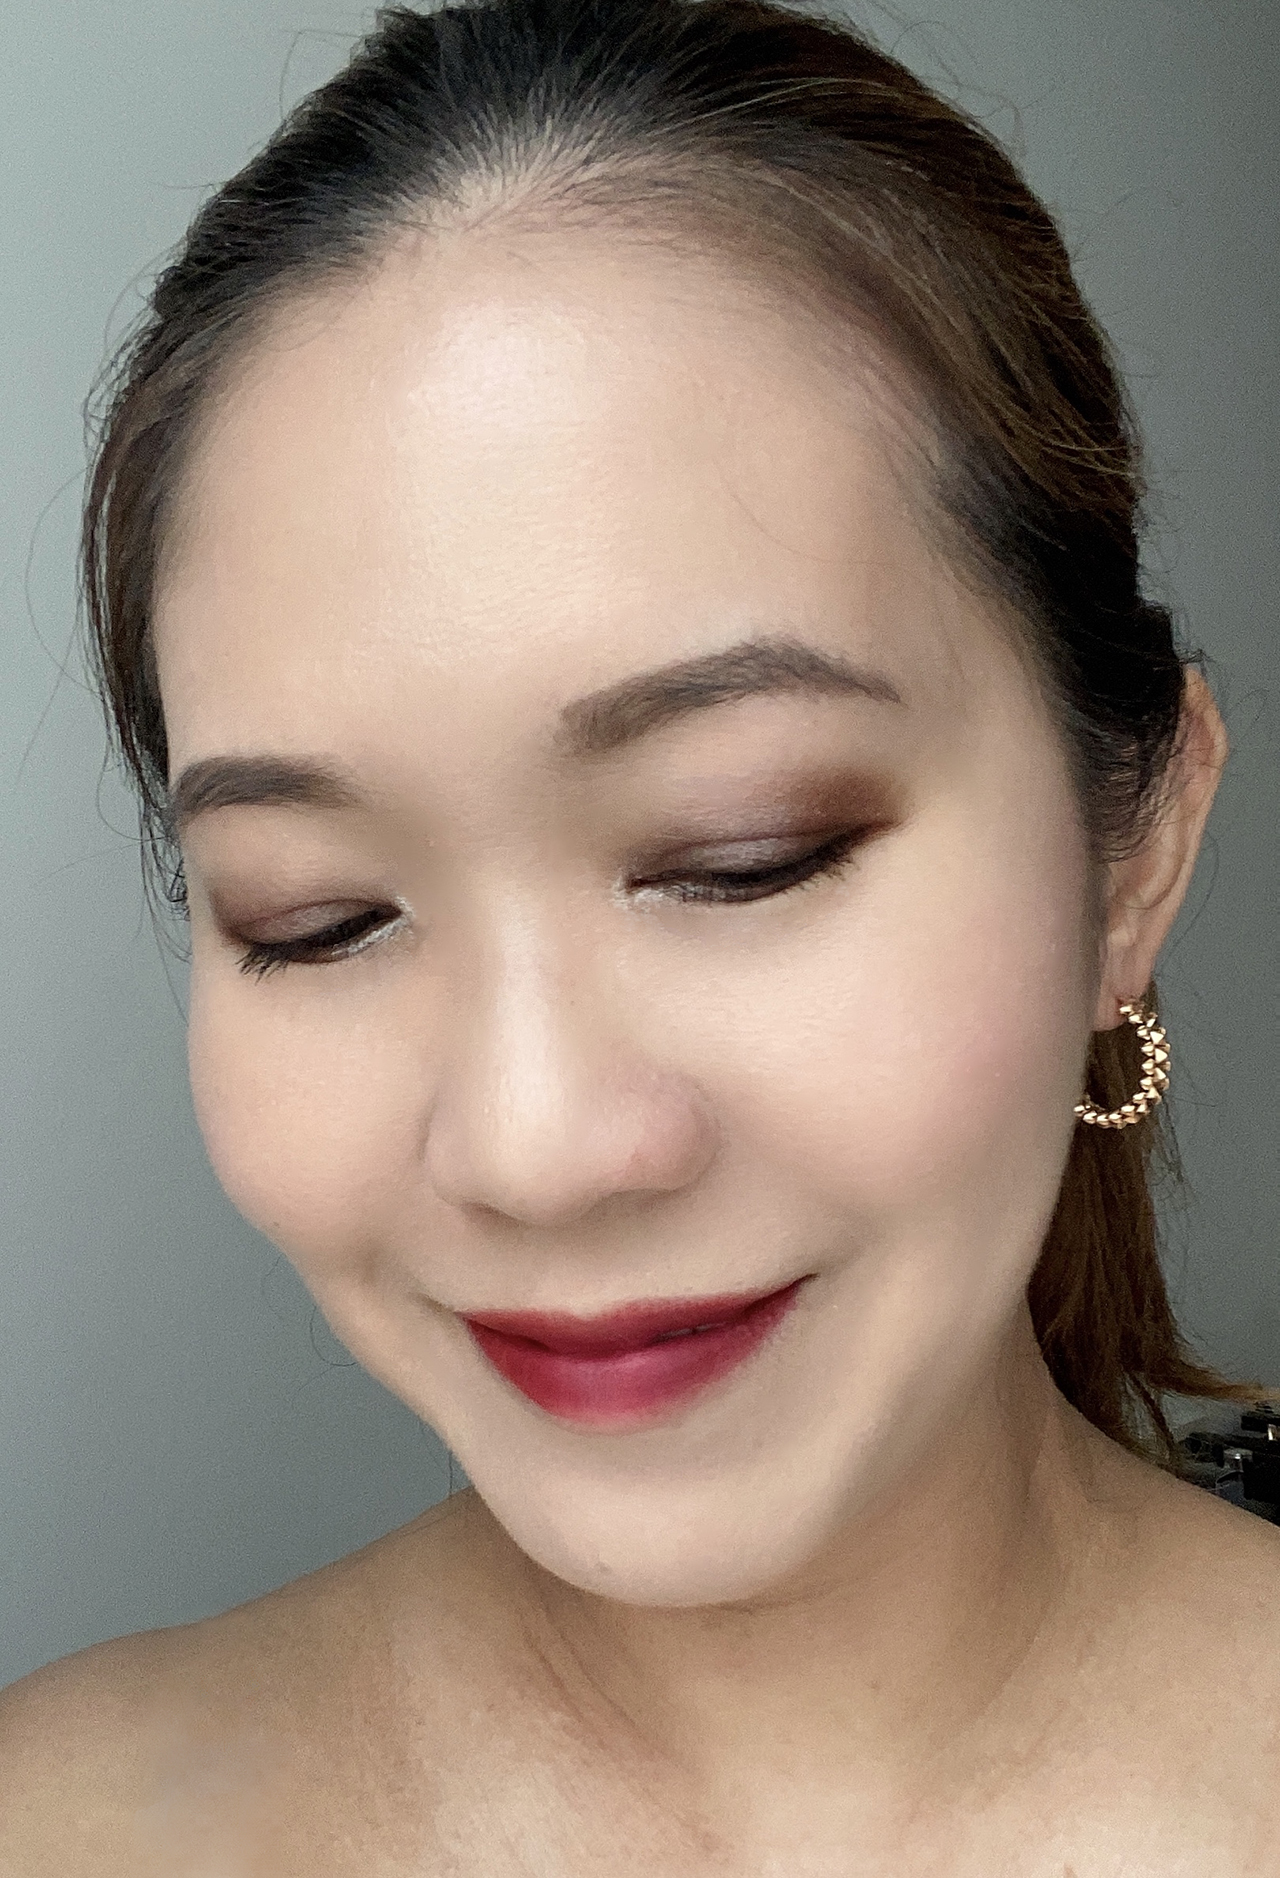 By Terry Paris by Light makeup look